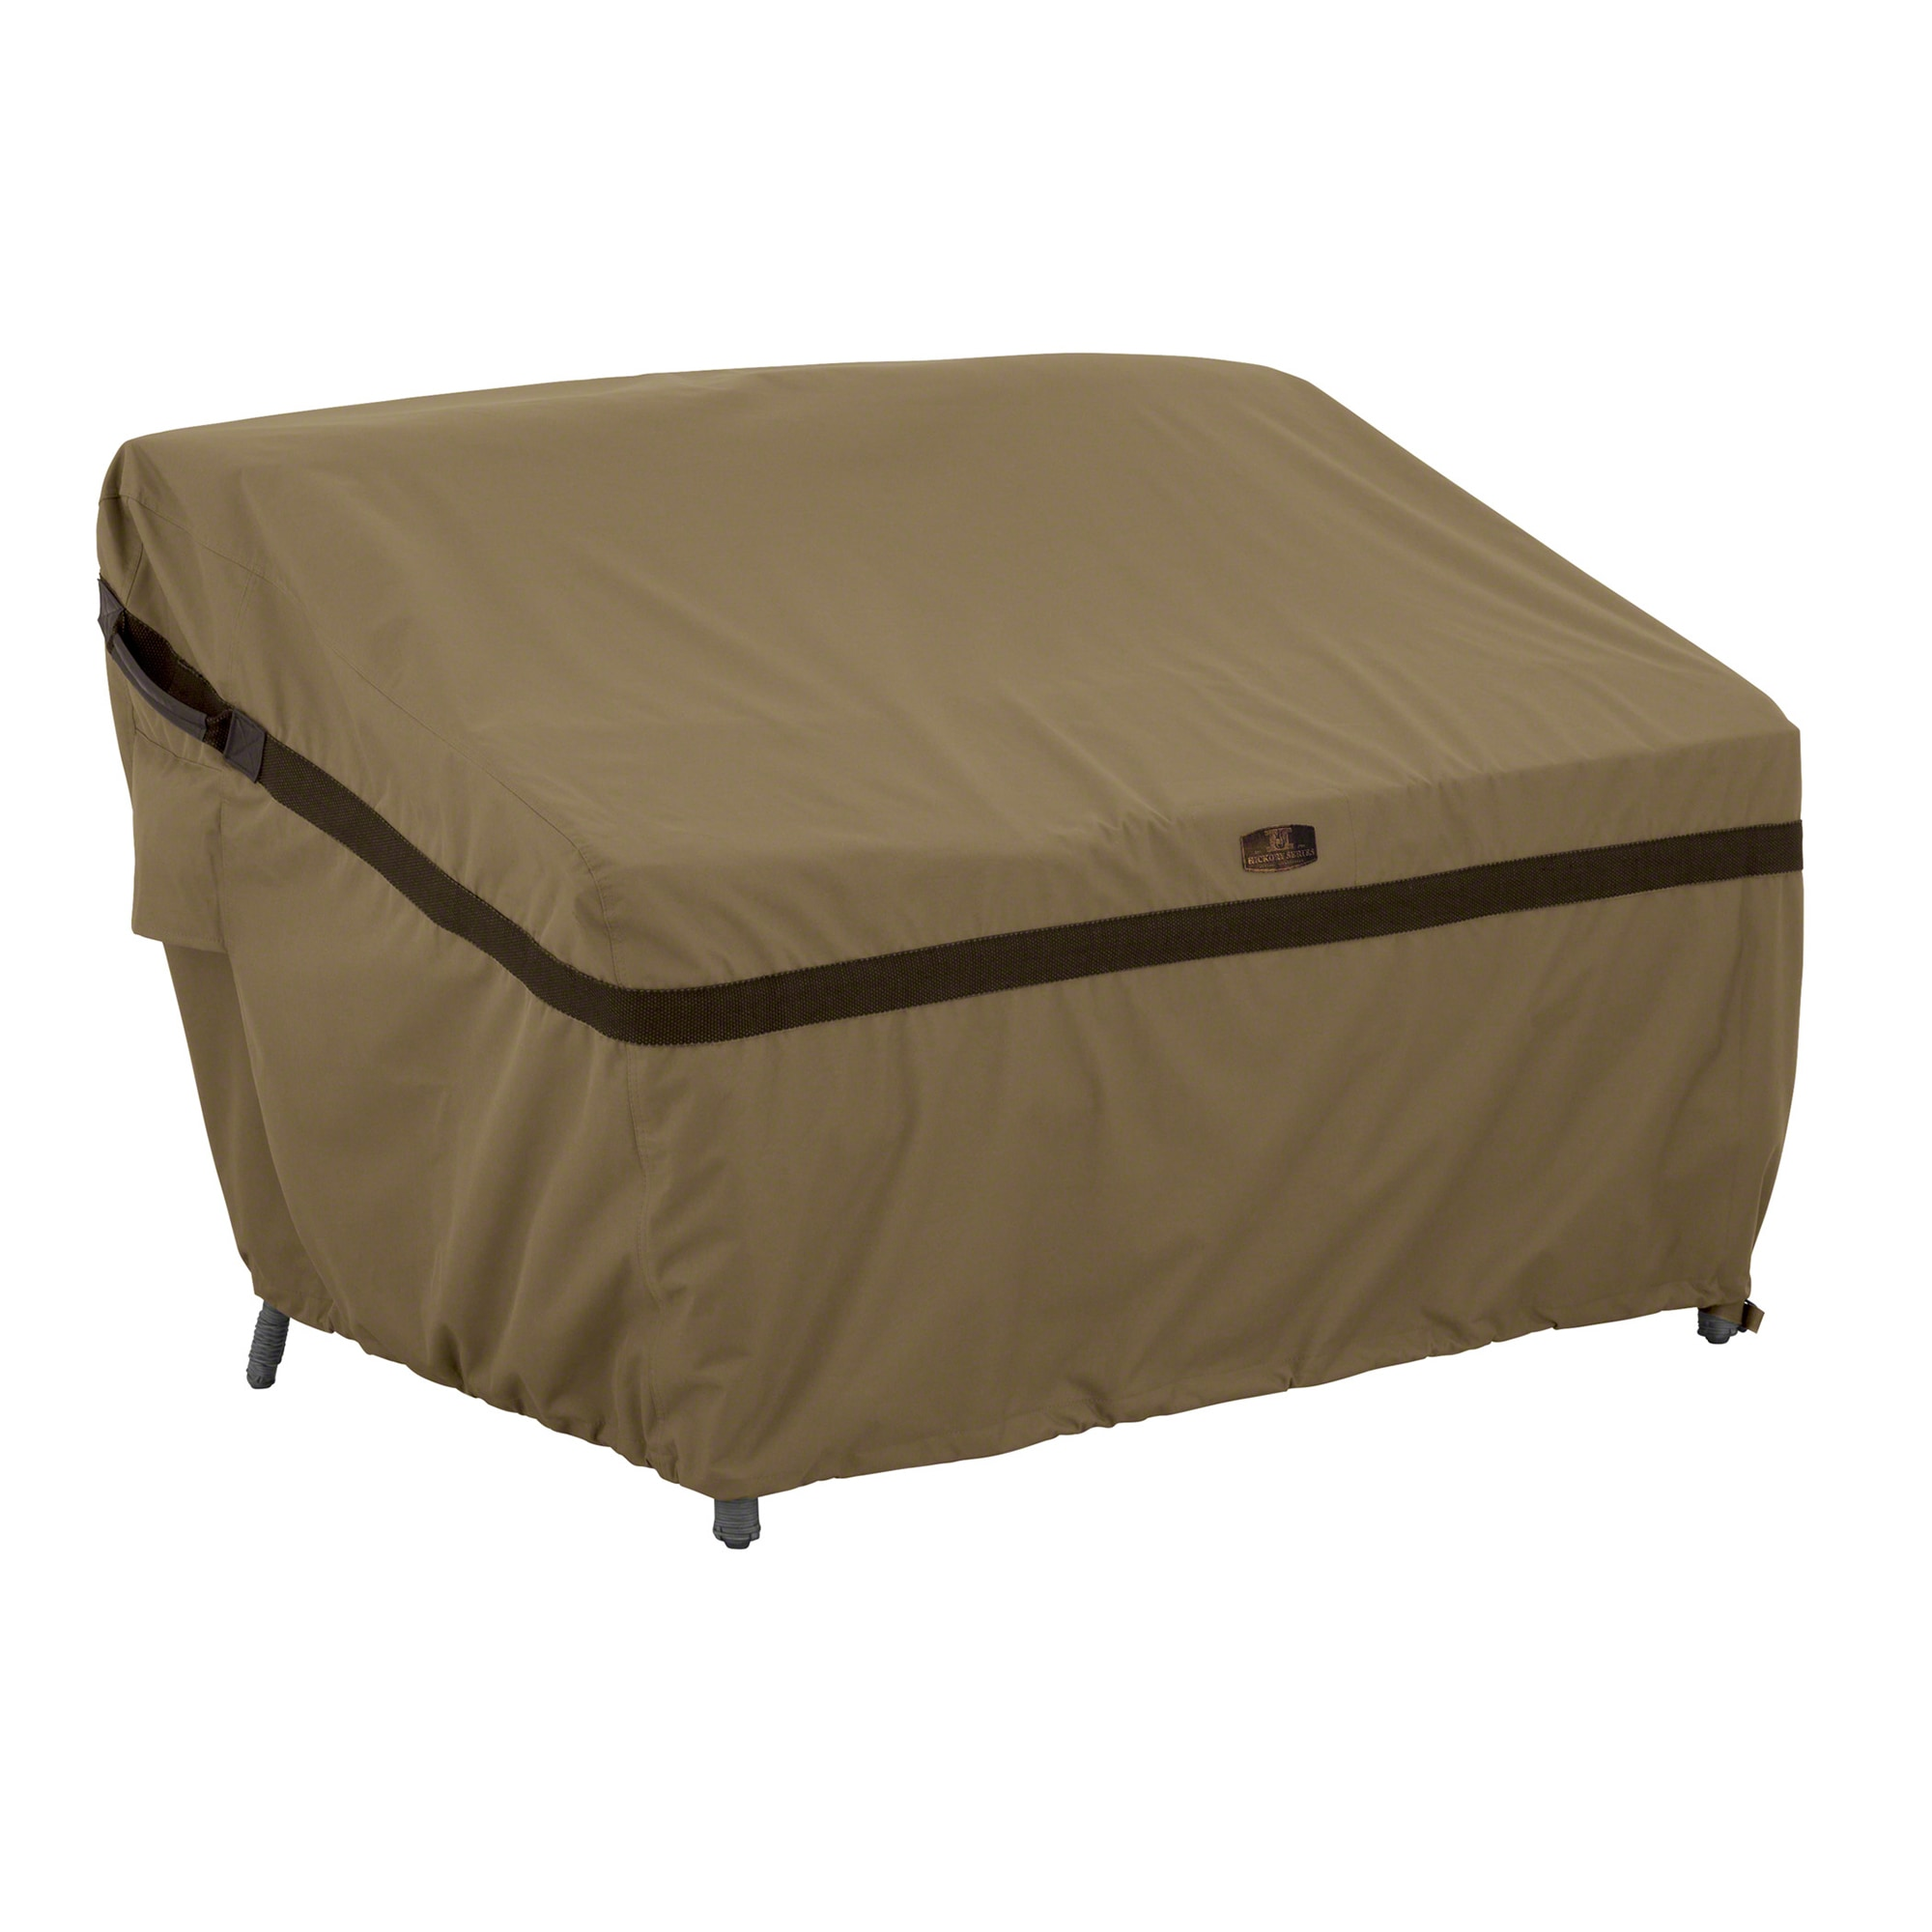 Classic Accessories Covers Hickory Patio Sofa And Bench Covers Sofa Loveseat Cover Medium